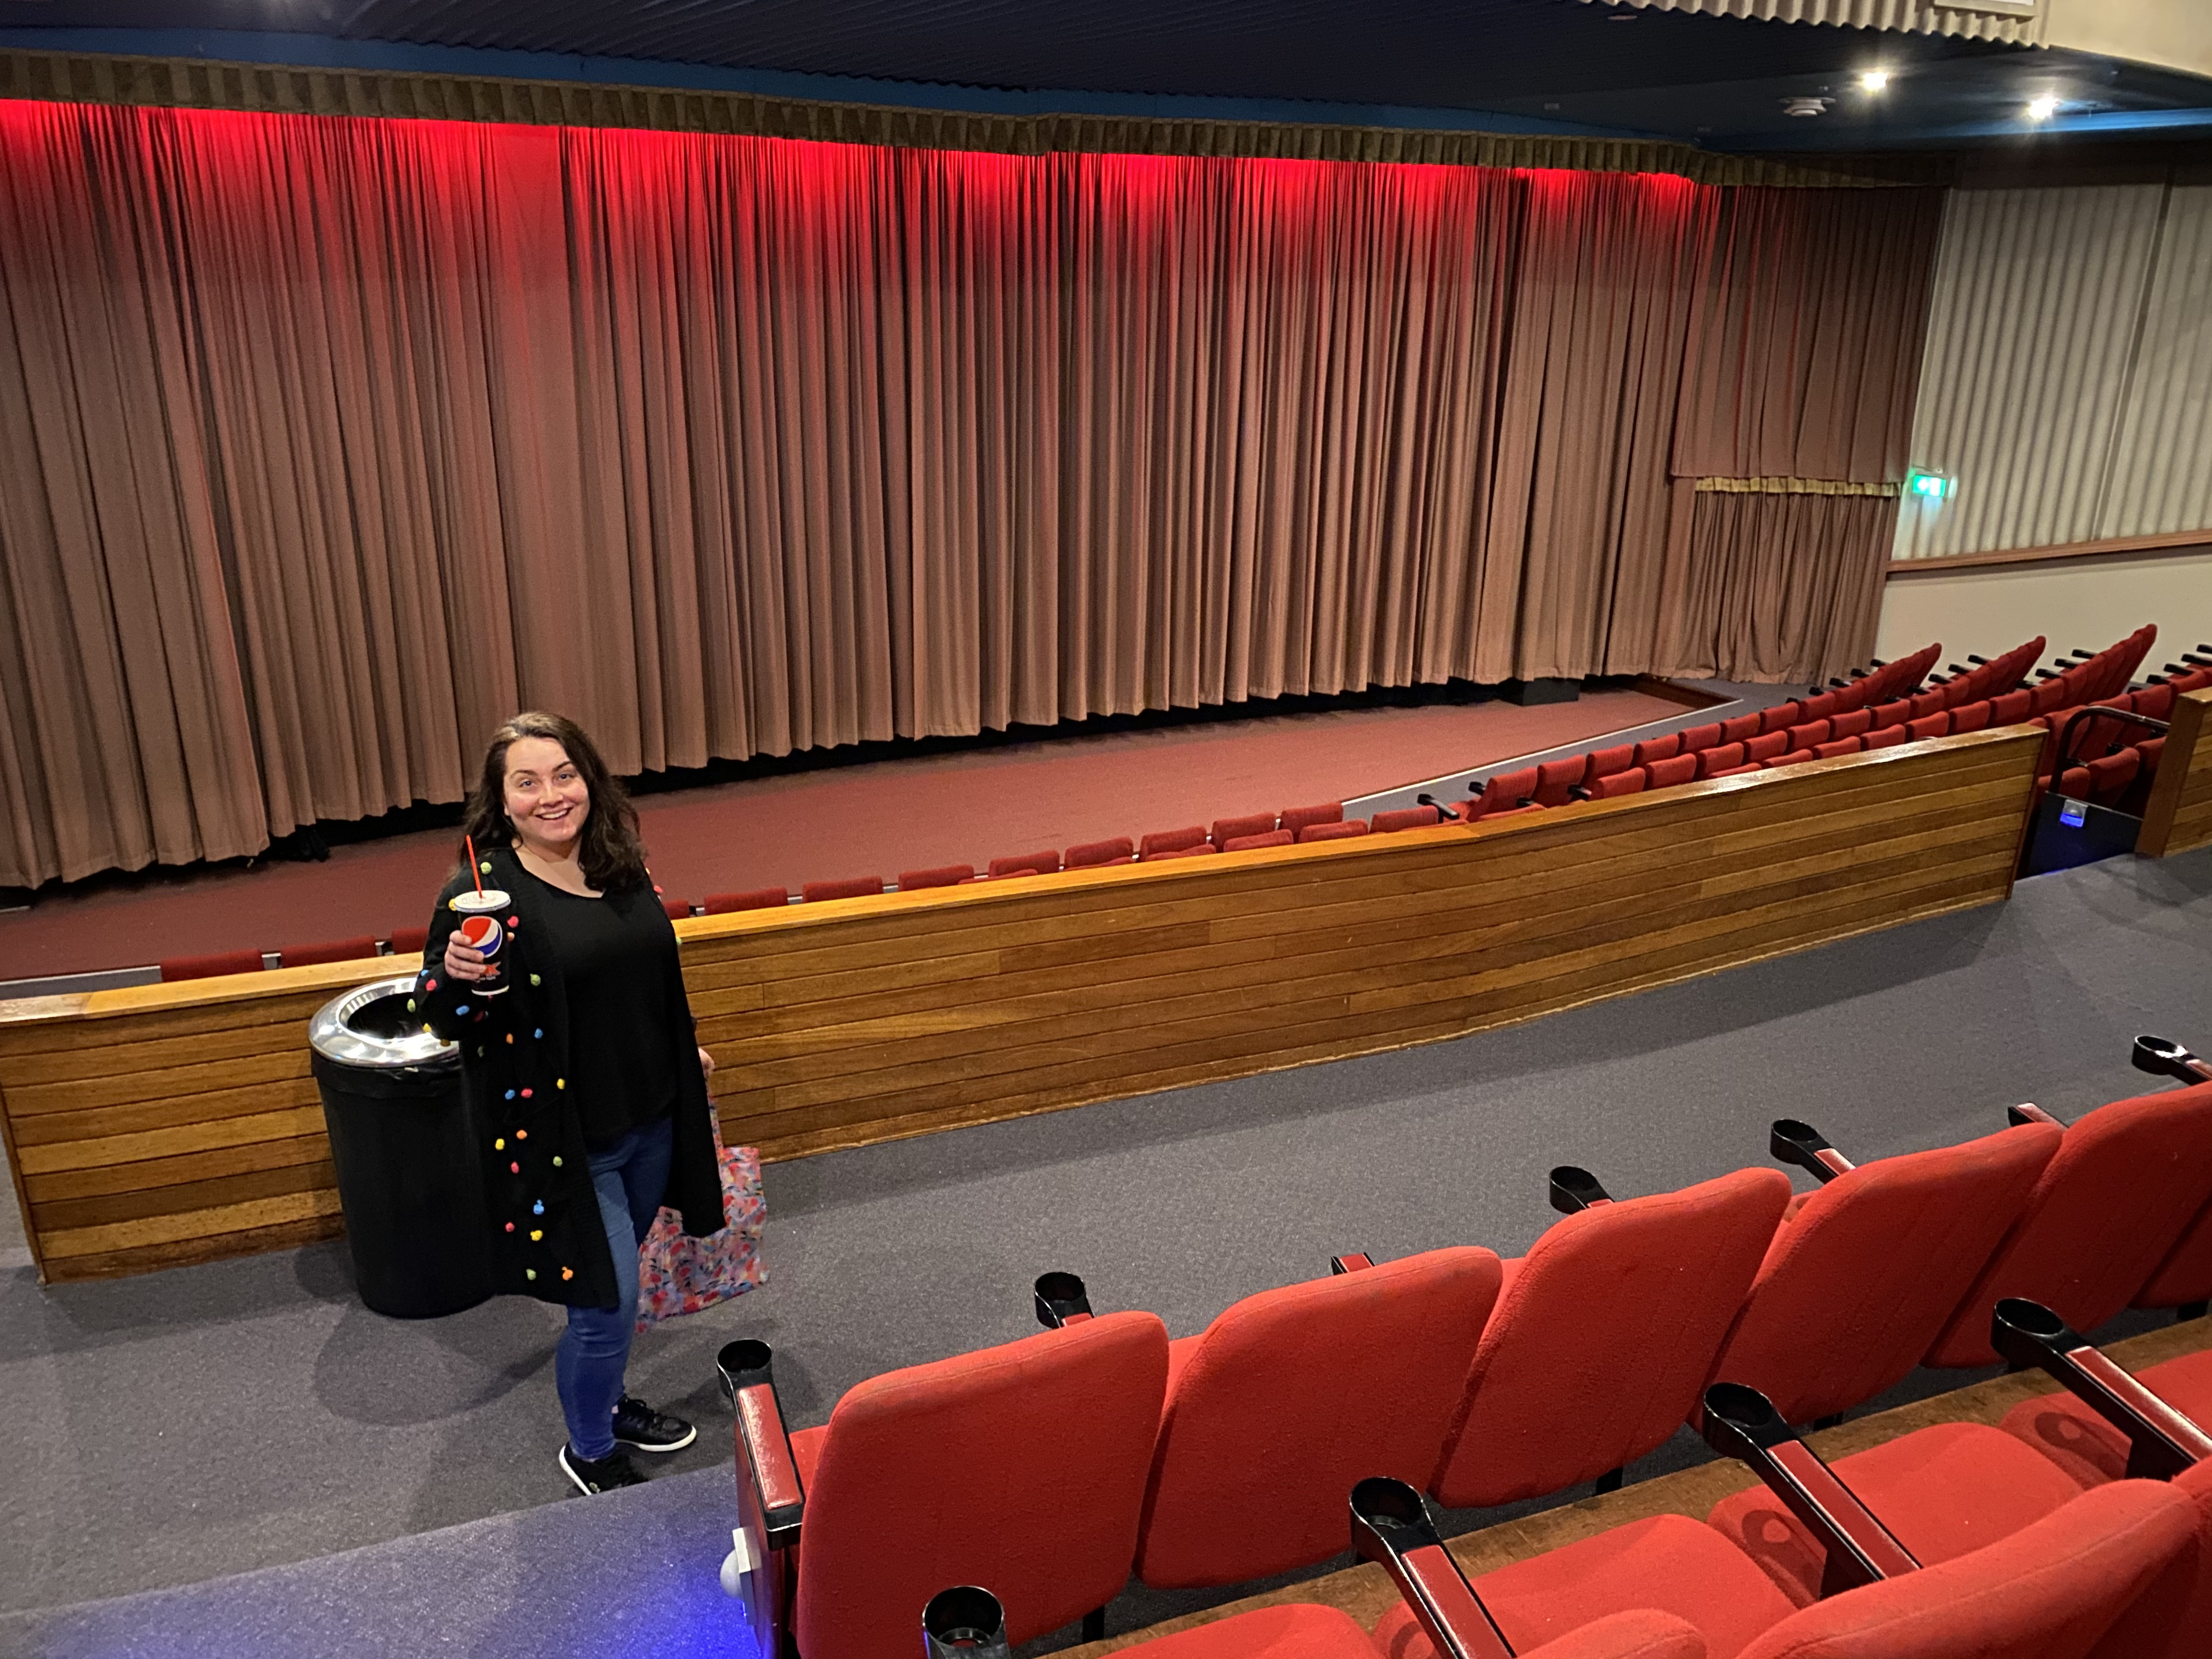 Natasha stands in an empty gala cinema with rows of red seats and the curtain drawn over the screen.